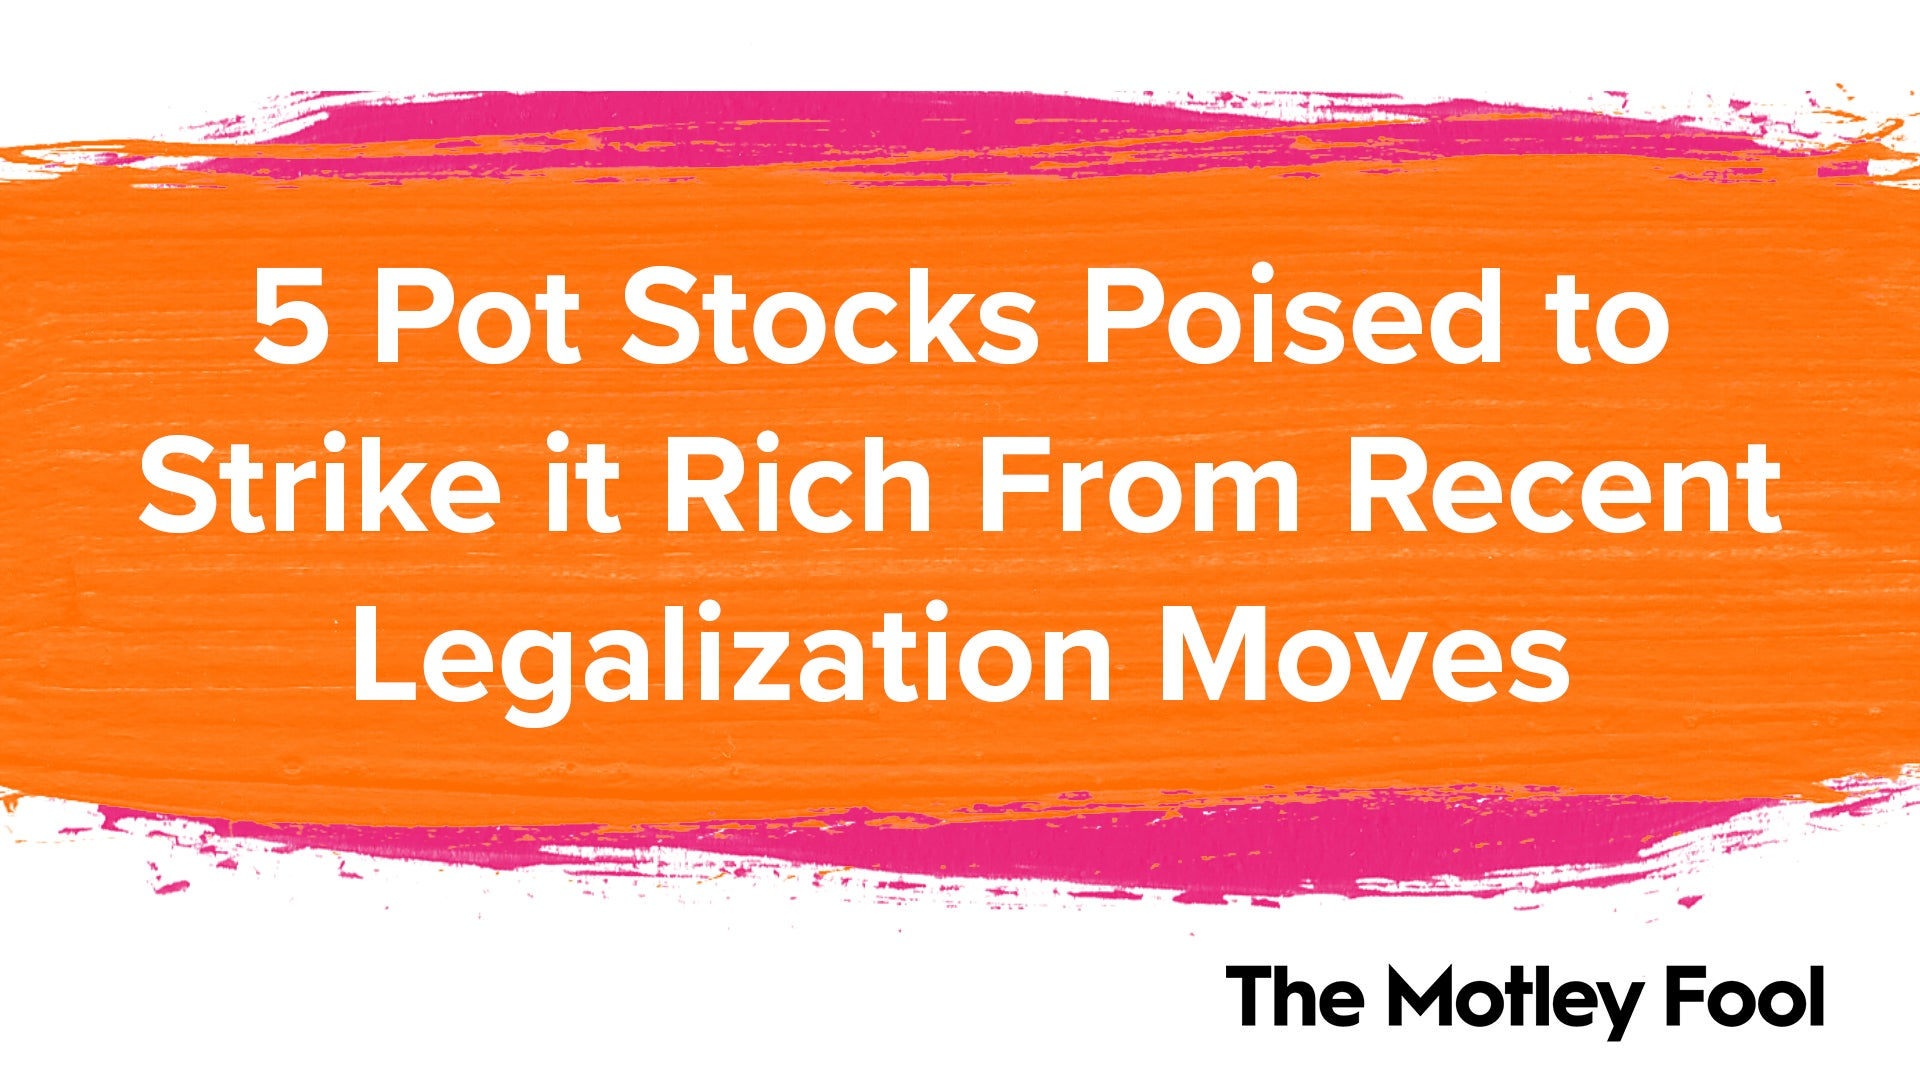 5 Pot Stocks Poised to Strike It Rich From Recent Legalization Moves